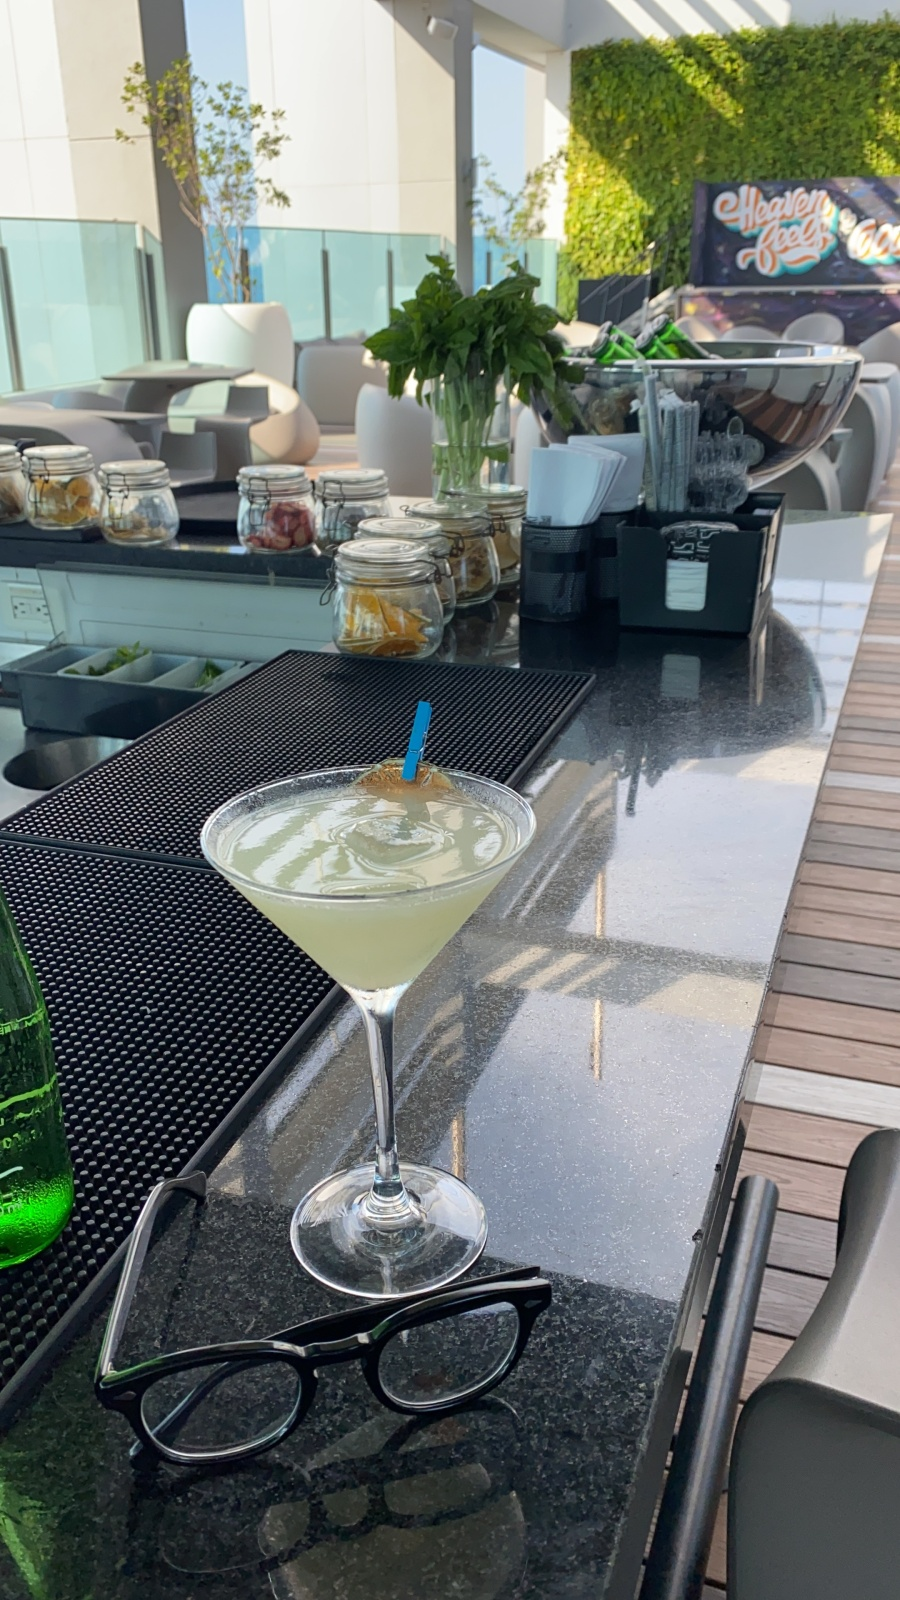 51 Sky Bar at the Hotel Estelar Cartagena De Indias